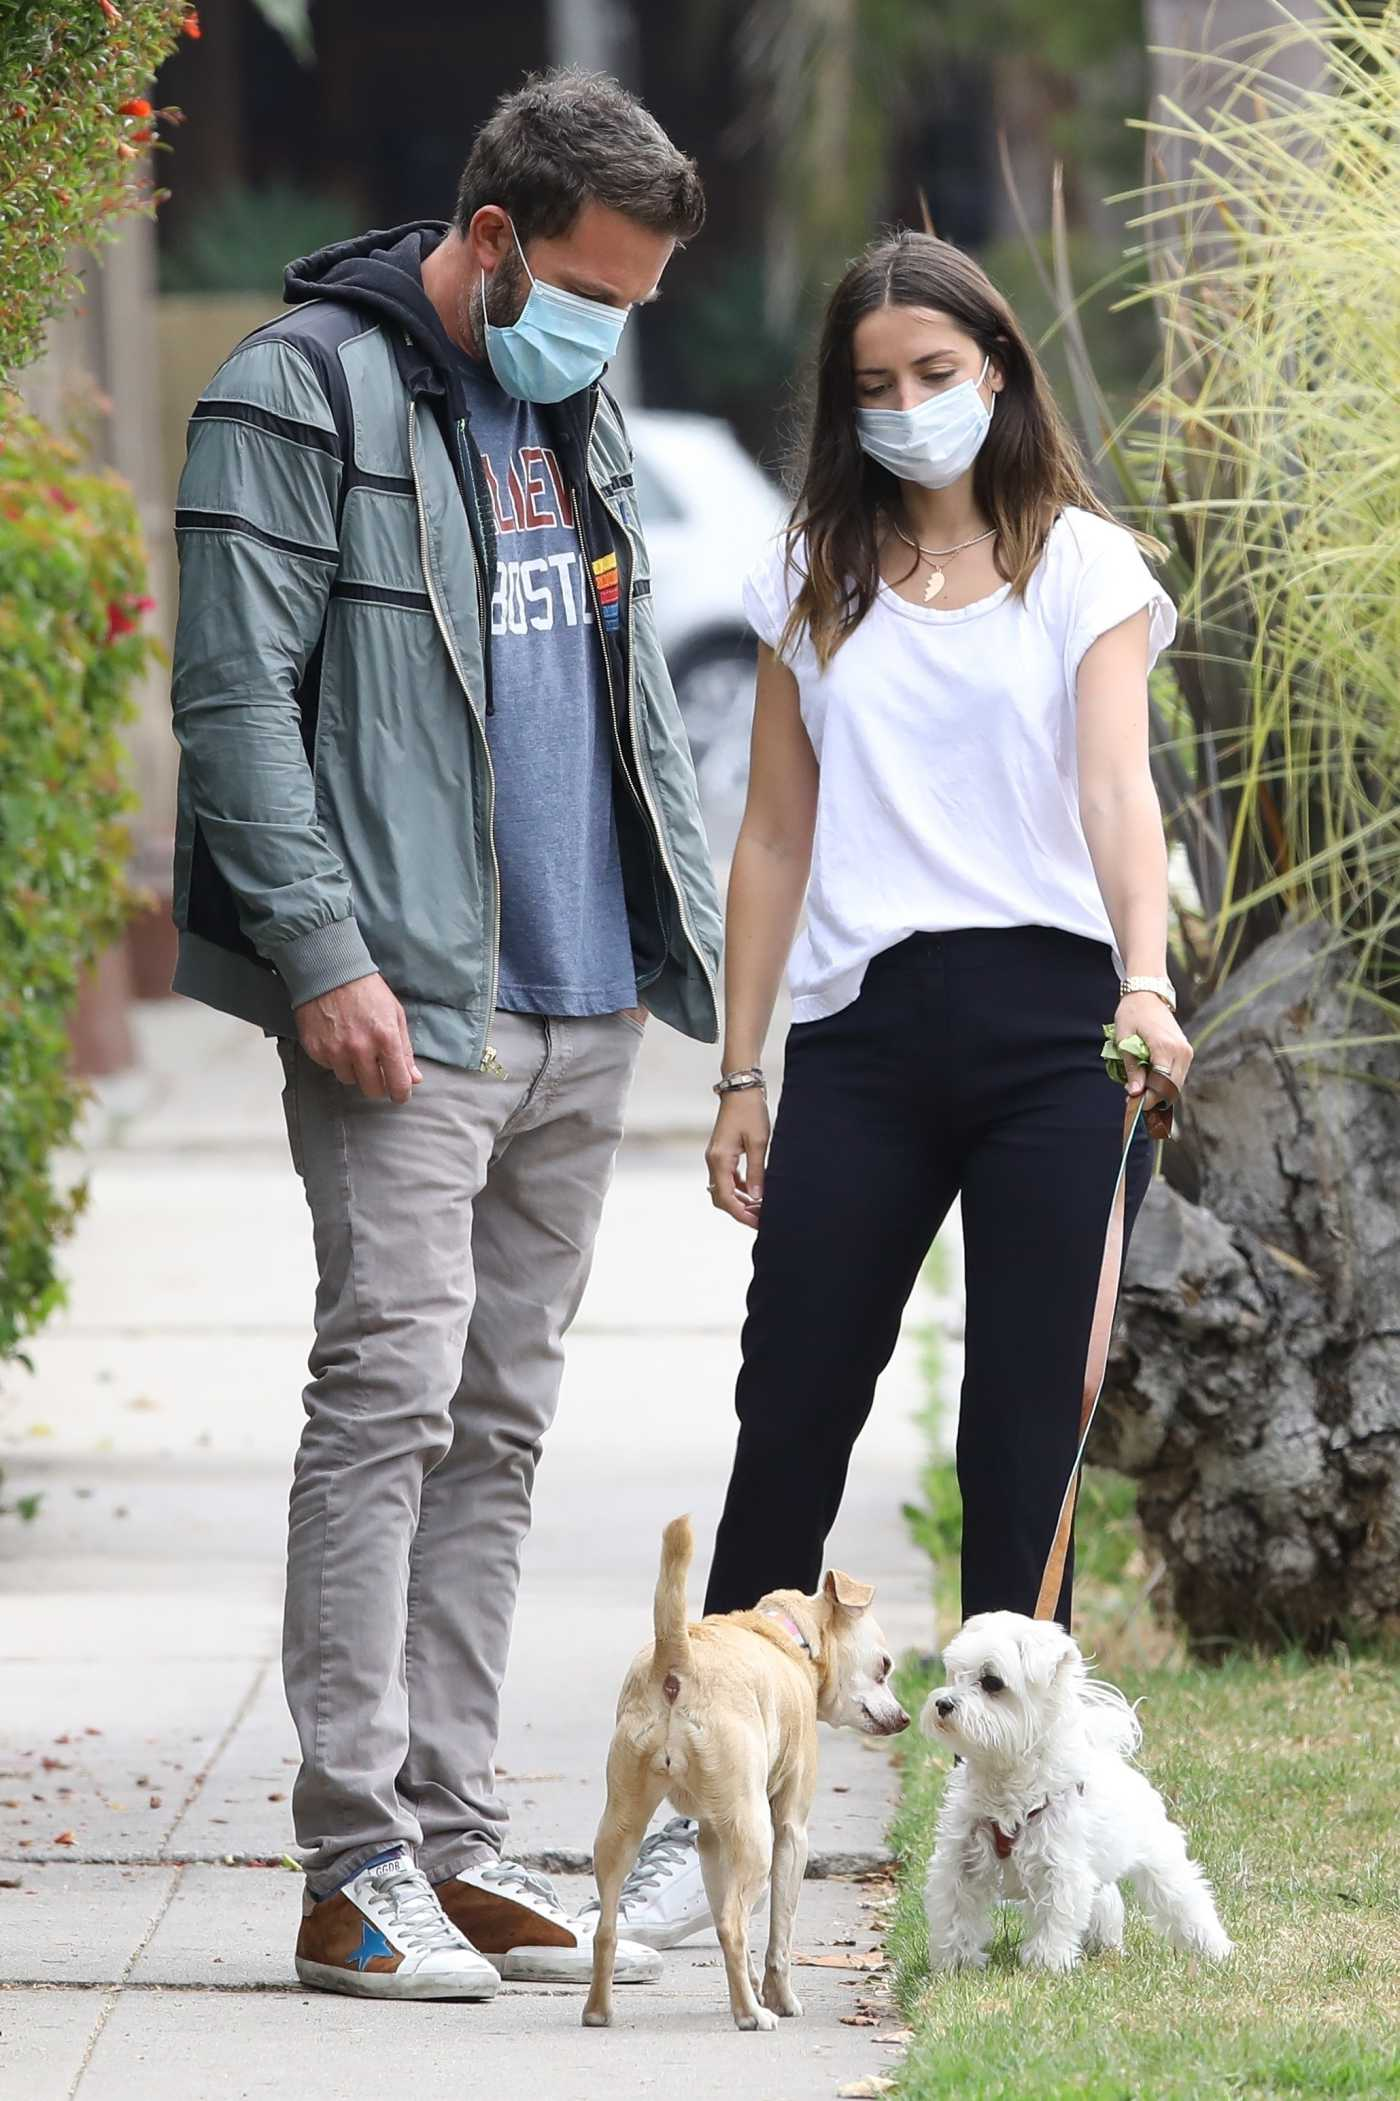 Ana De Armas in a White Tee Walks Her Dog Out with Ben Affleck in Venice 07/24/2020